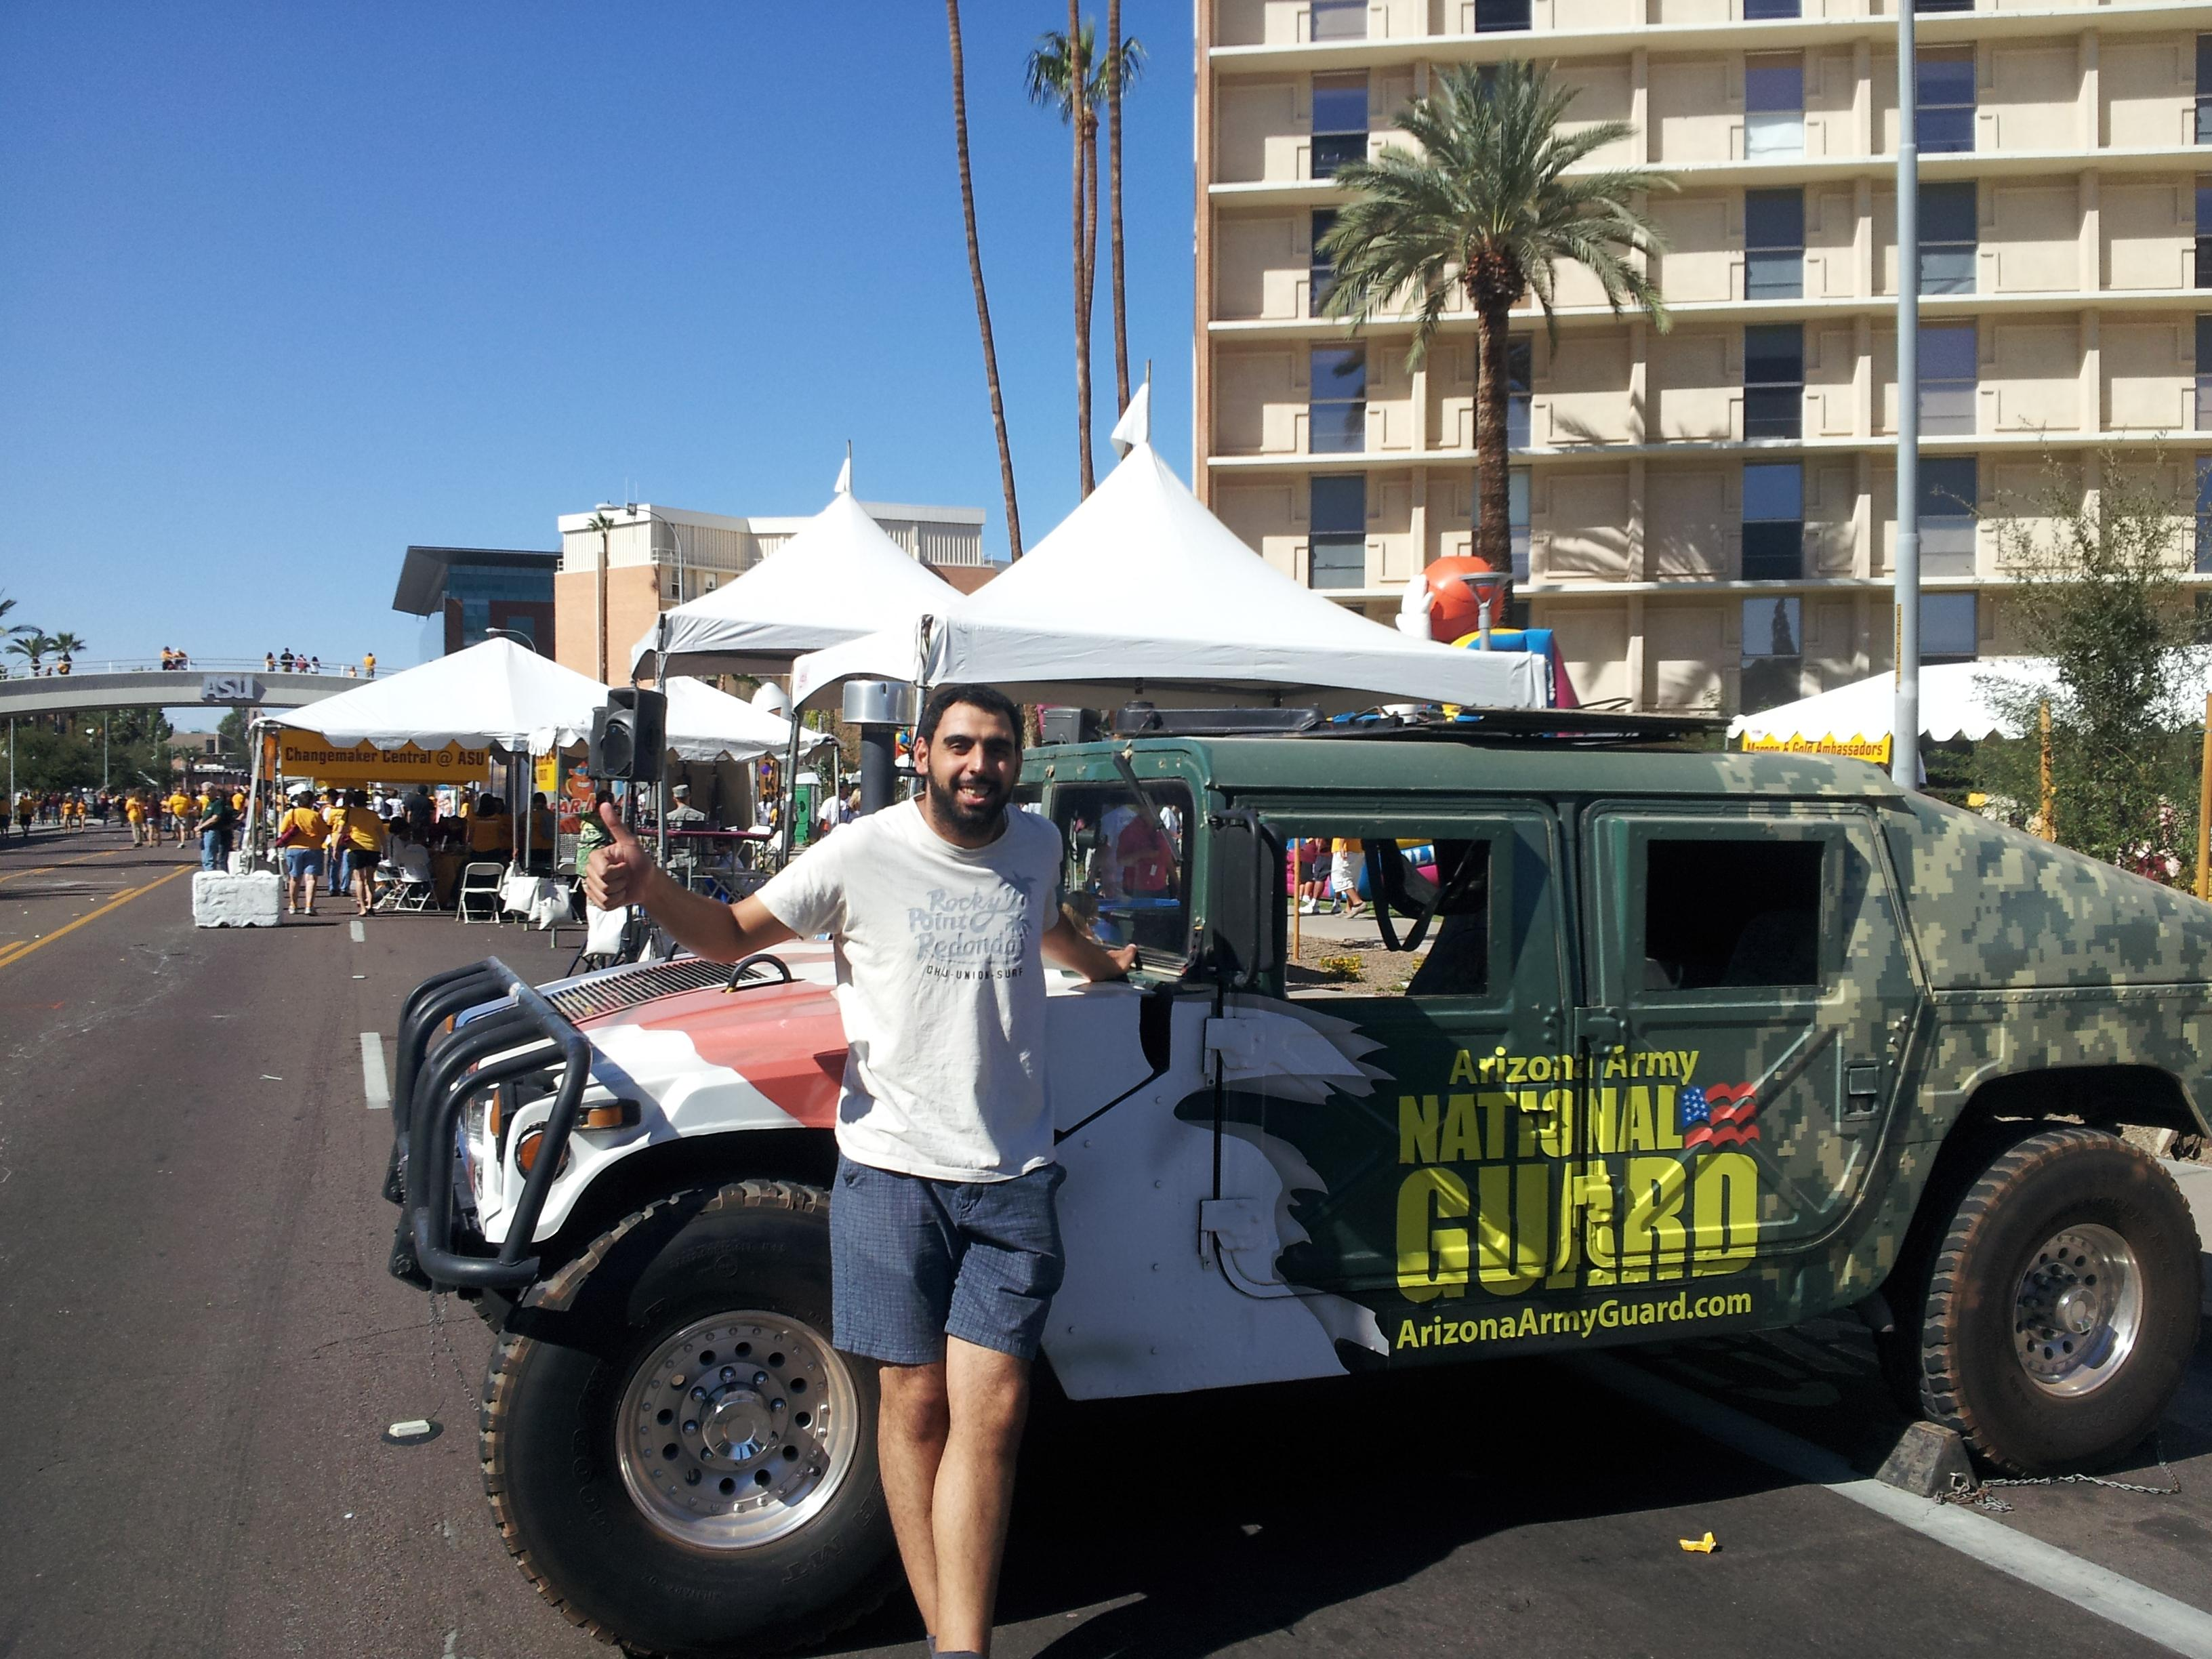 Abdelhamid Hamouda poses with an Arizona Army National Guard vehicle at ASU's Homecoming Parade and Block Party in October 2012.